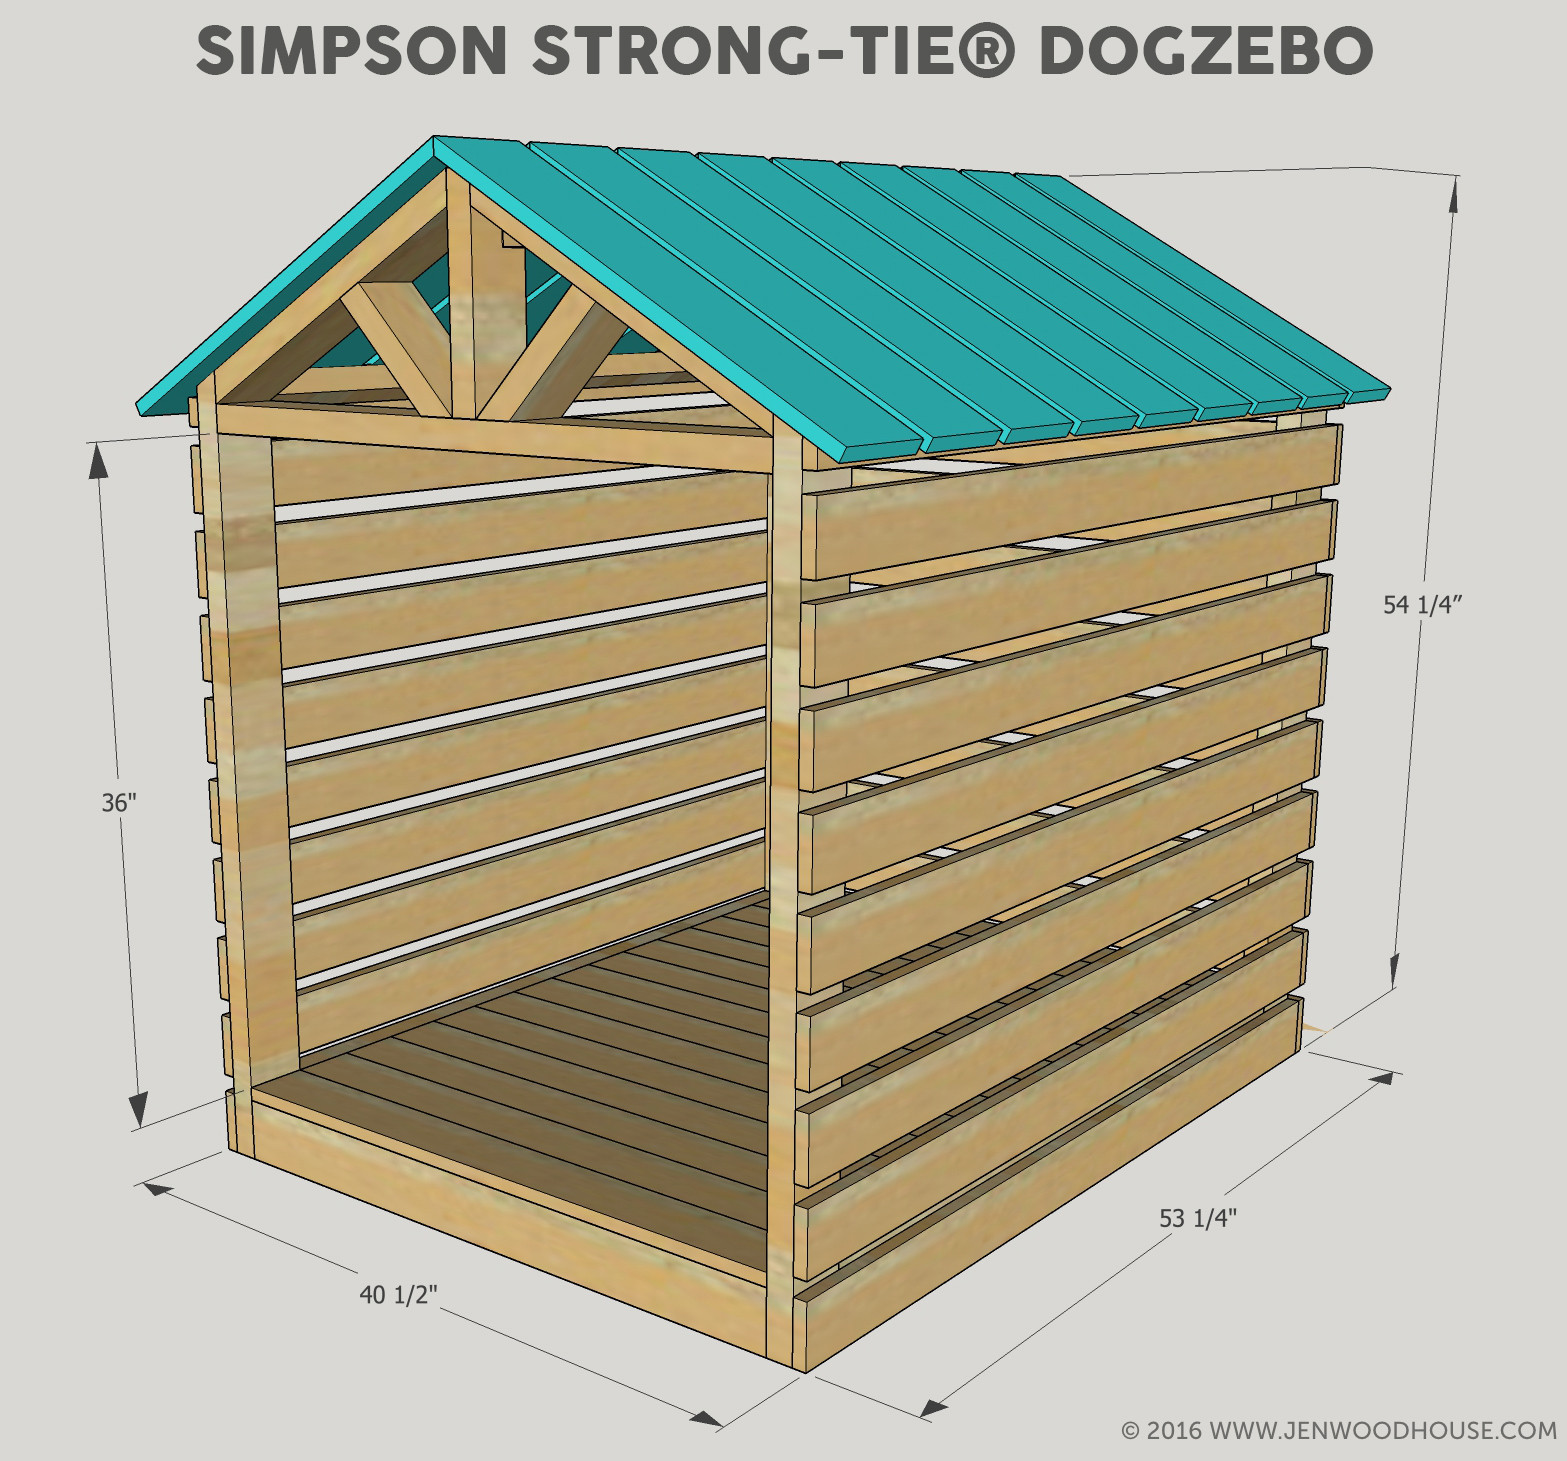 Best ideas about DIY Dog House Plans . Save or Pin DIY Doghouse Gazebo Now.